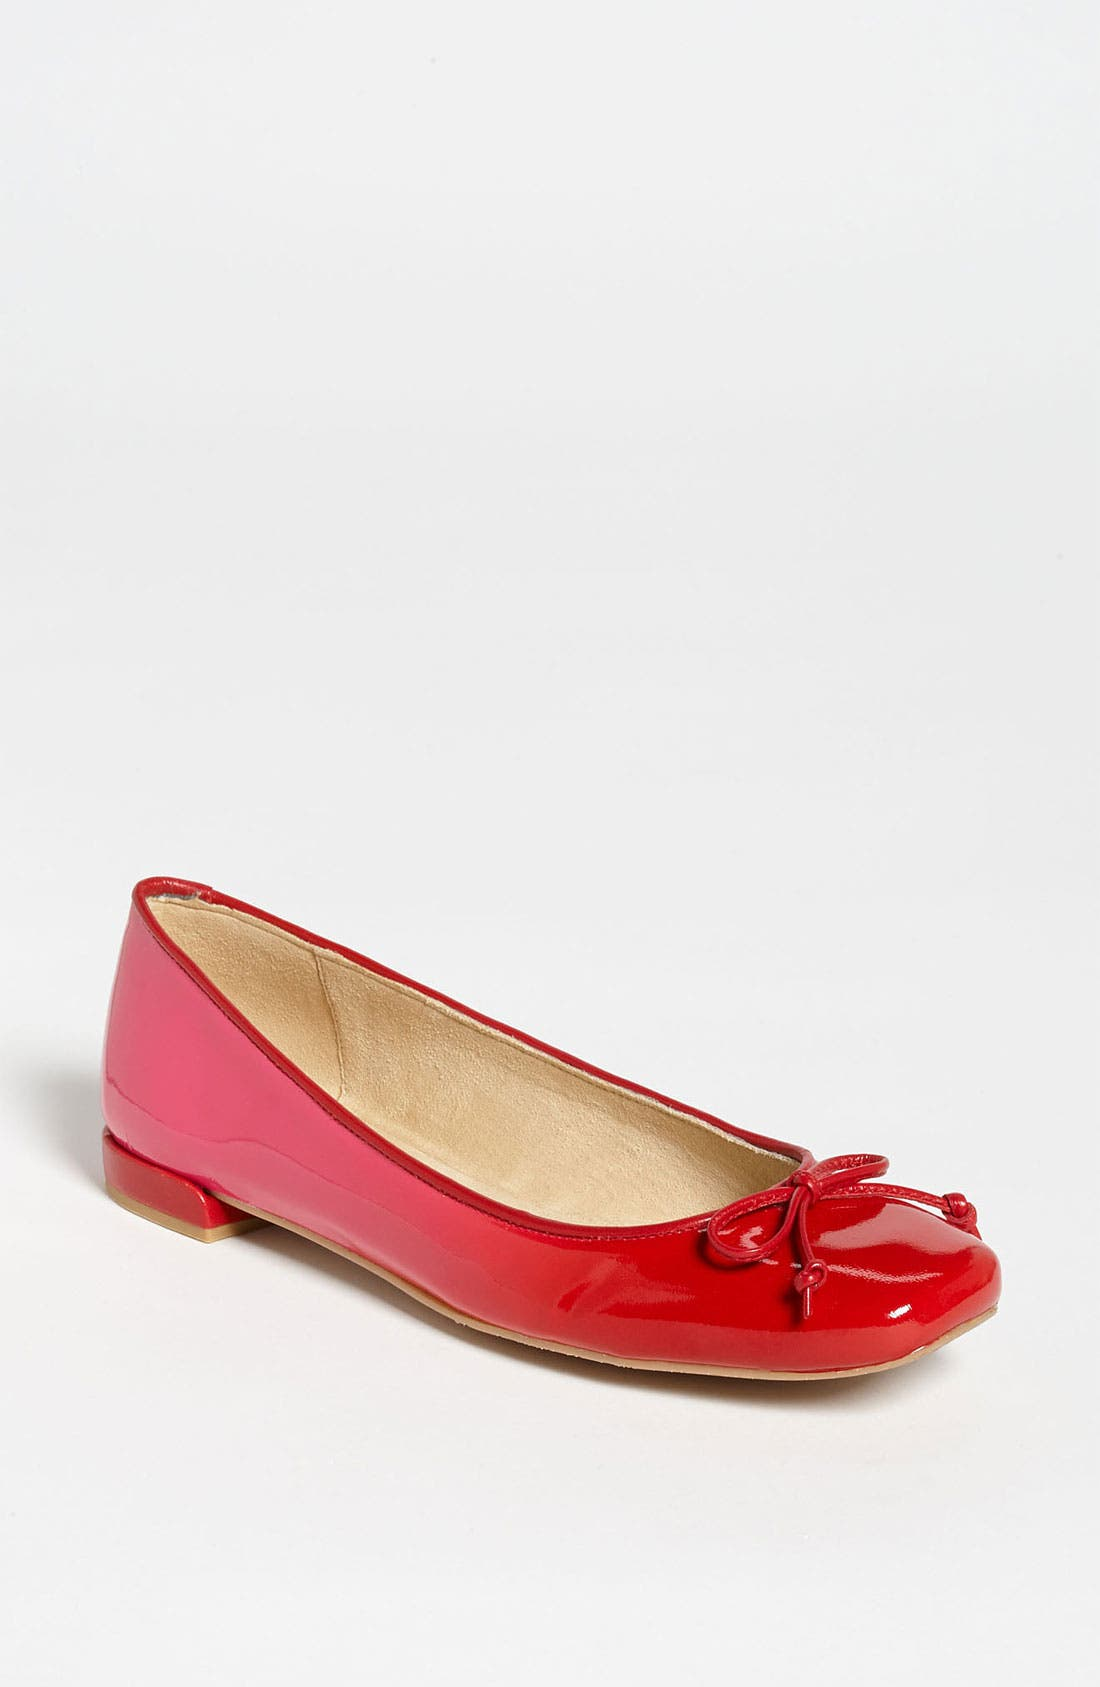 Alternate Image 1 Selected - Stuart Weitzman 'Stringon' Flat